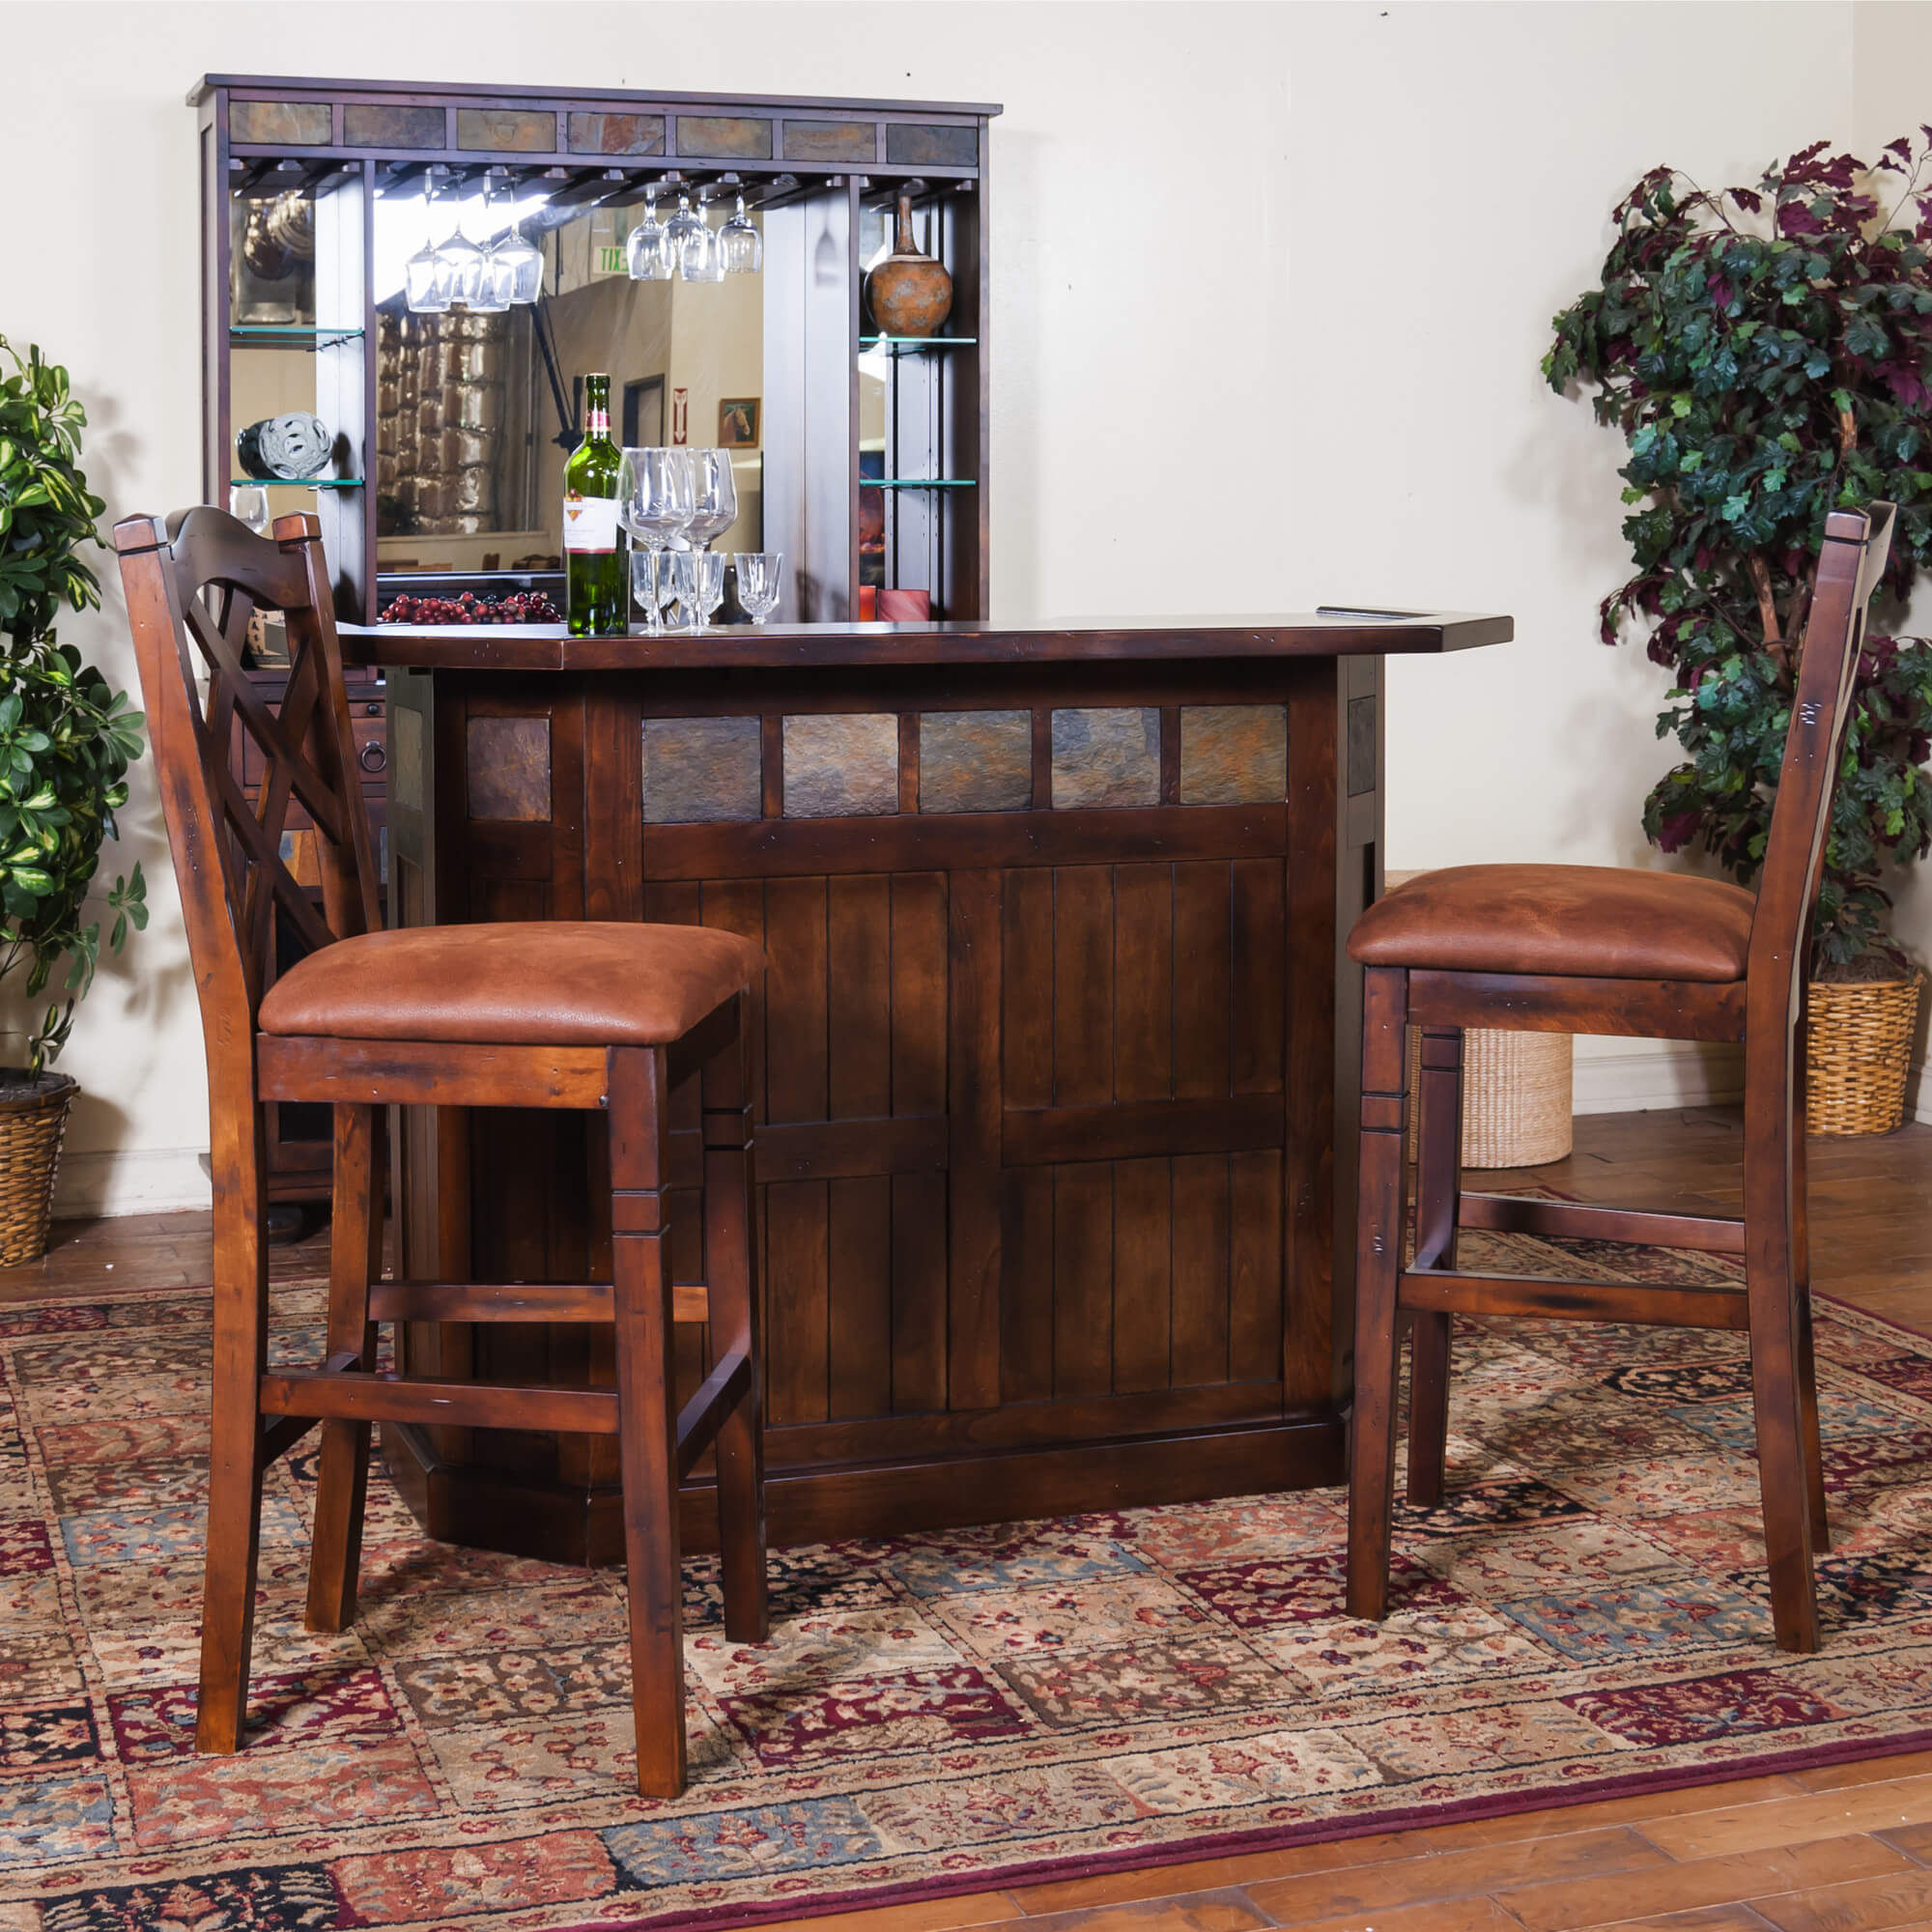 This Birch wood bar is a one-level unit with a 15 bottle wine rack and closed storage.